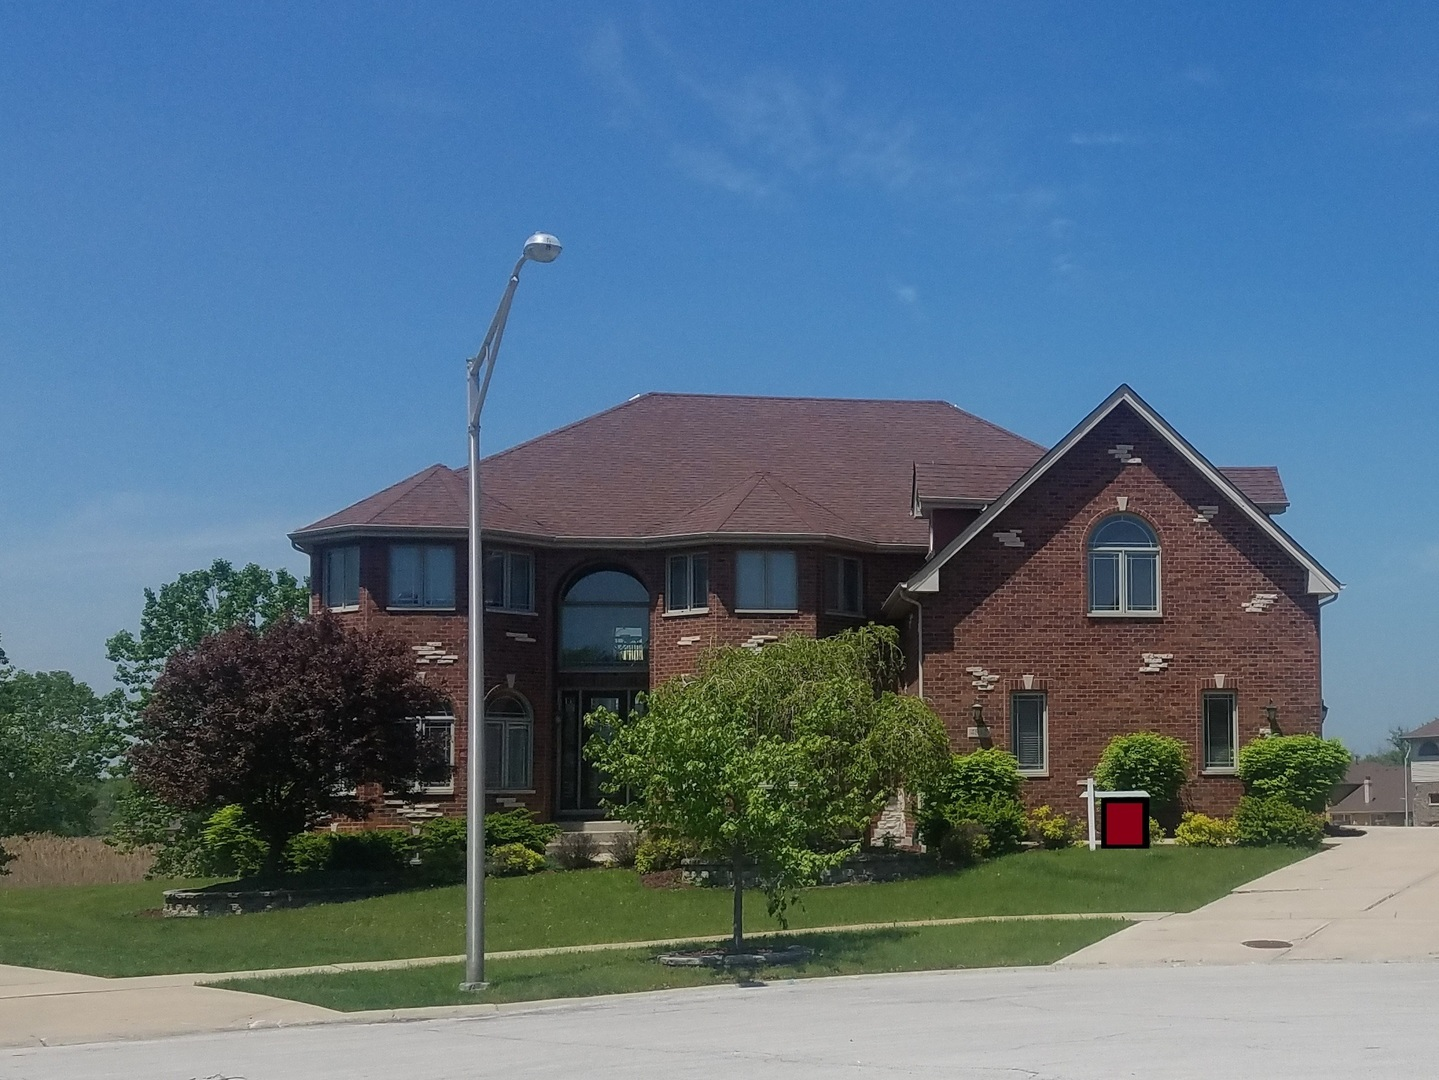 4852 TURNER COURT, COUNTRY CLUB HILLS, IL 60478